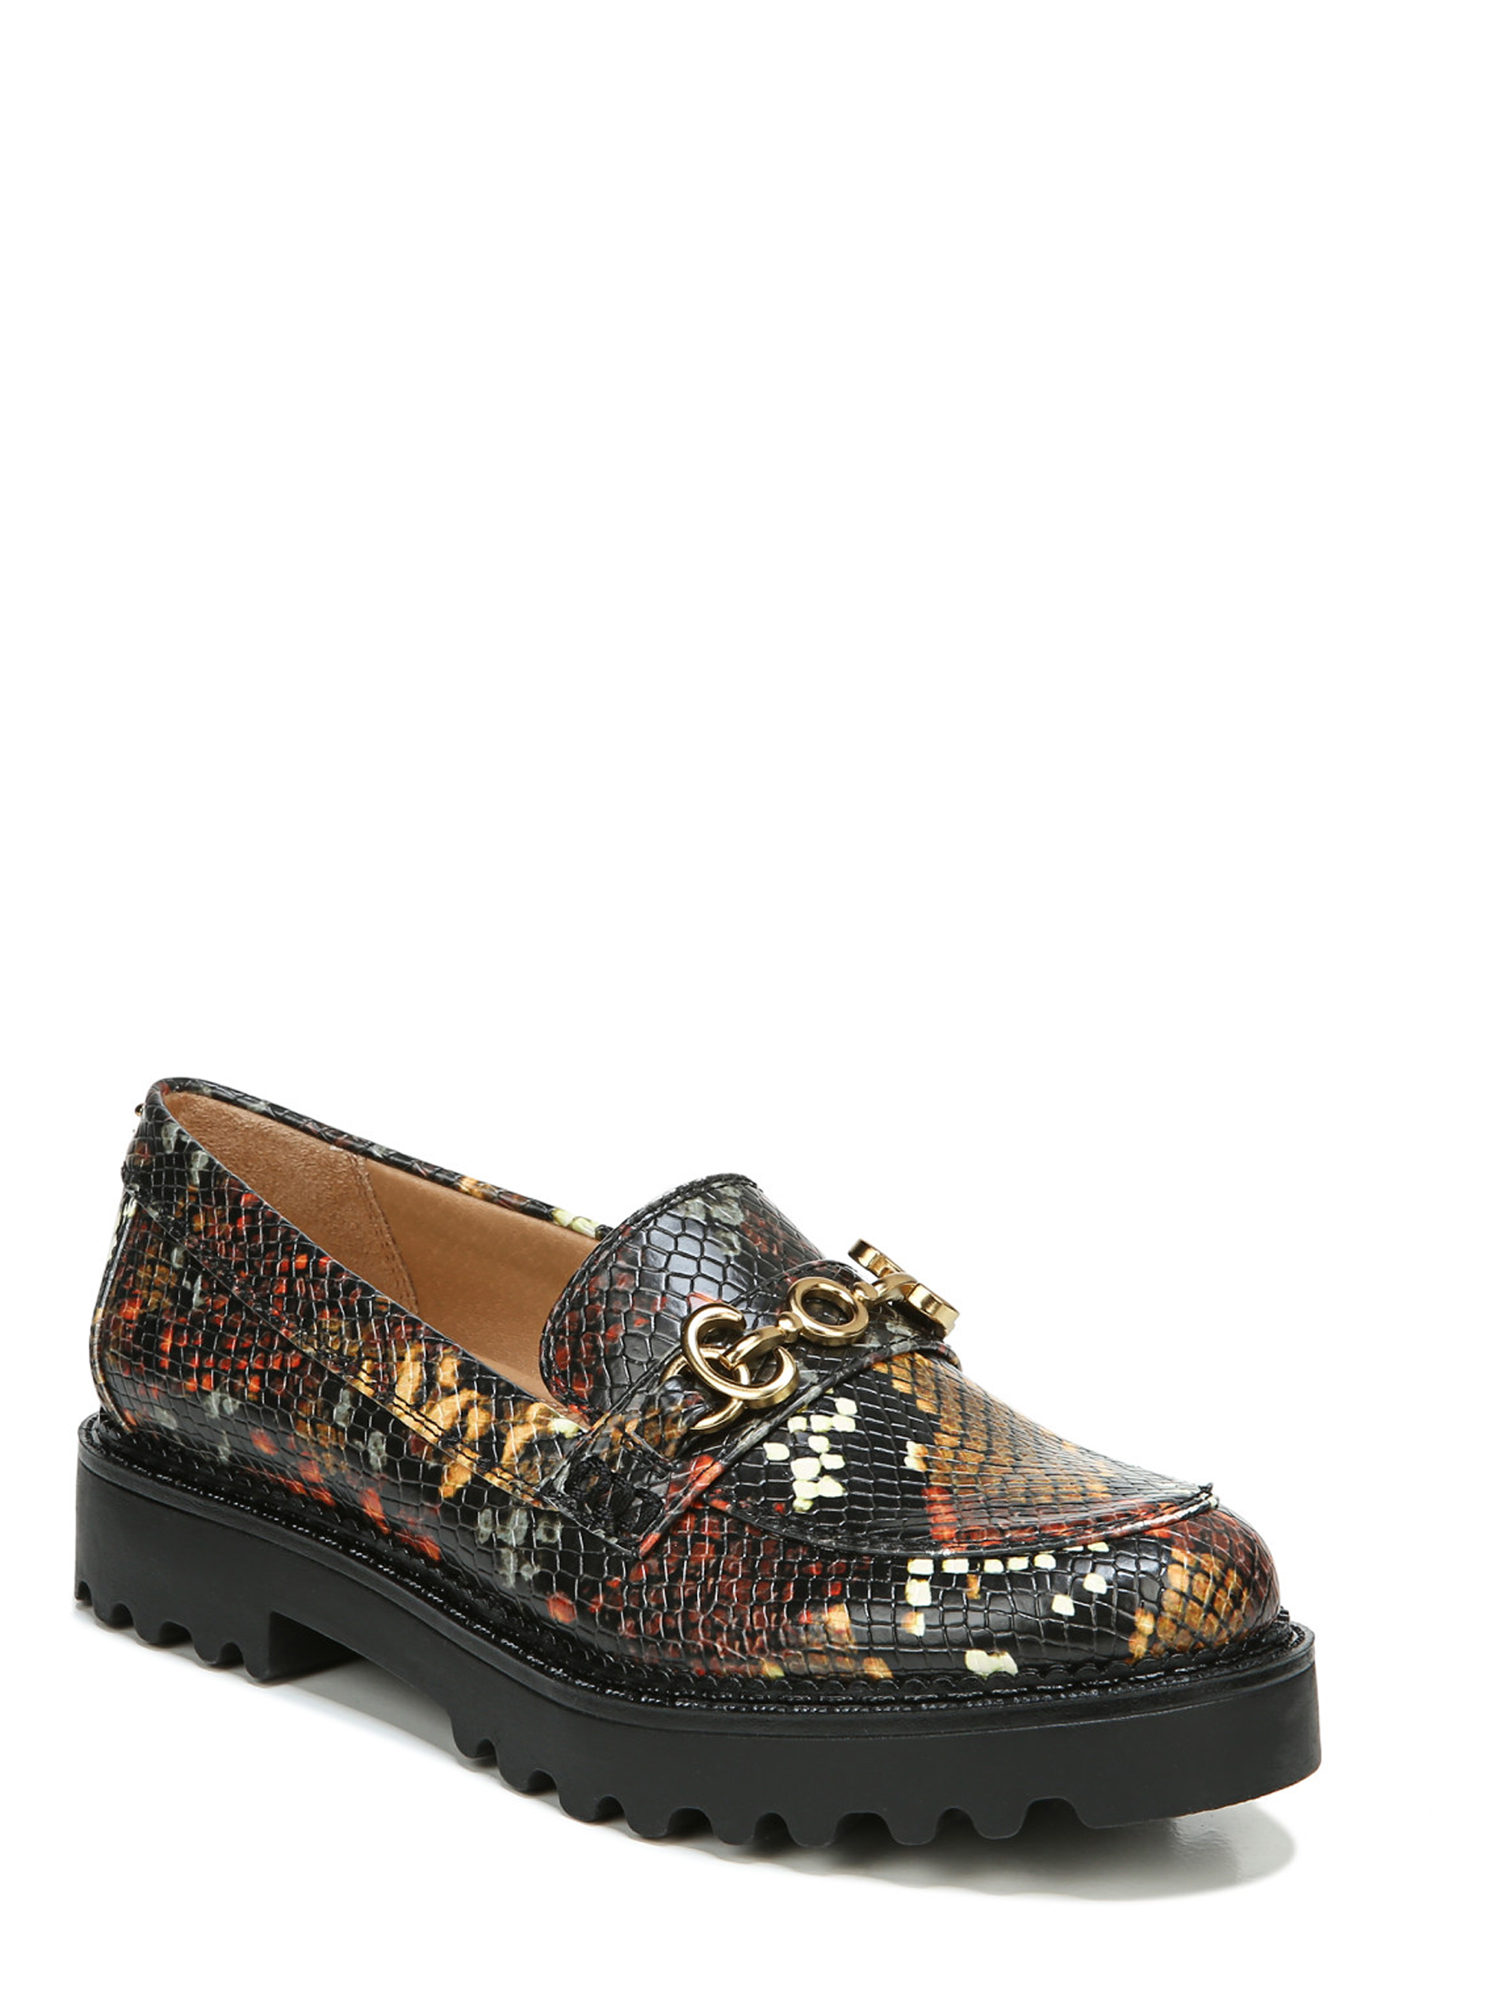 Cactus pattern succulent Black Womens Loafer for womens Low Cut Lightweight